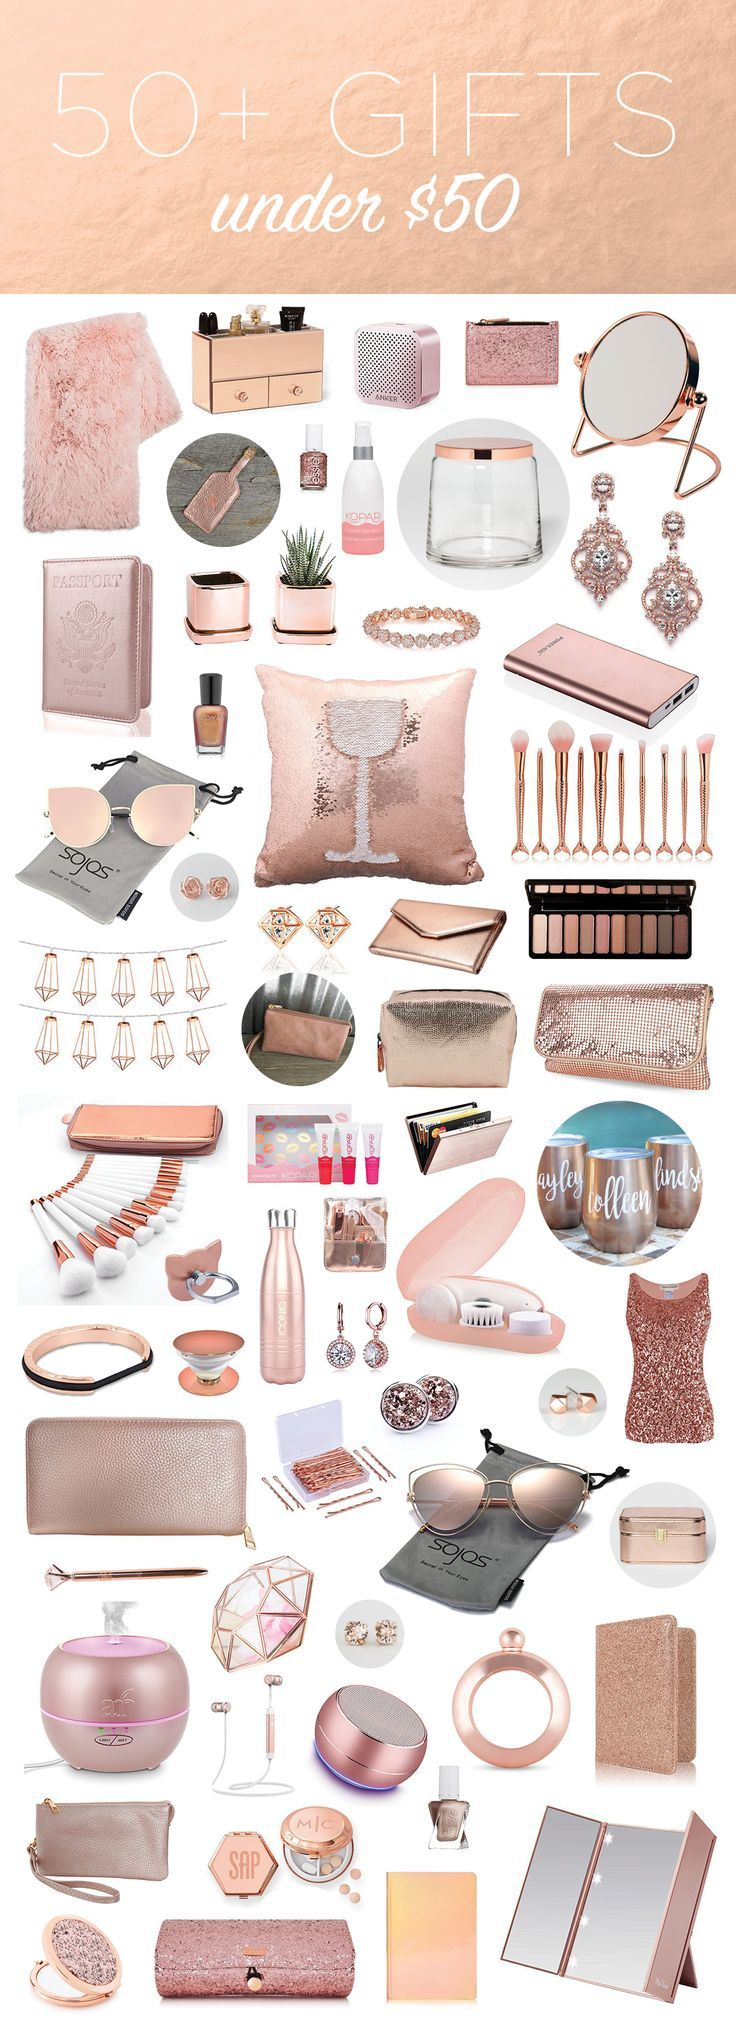 Gift Ideas for Your Bridesmaids - 50 Gift Ideas Under $50